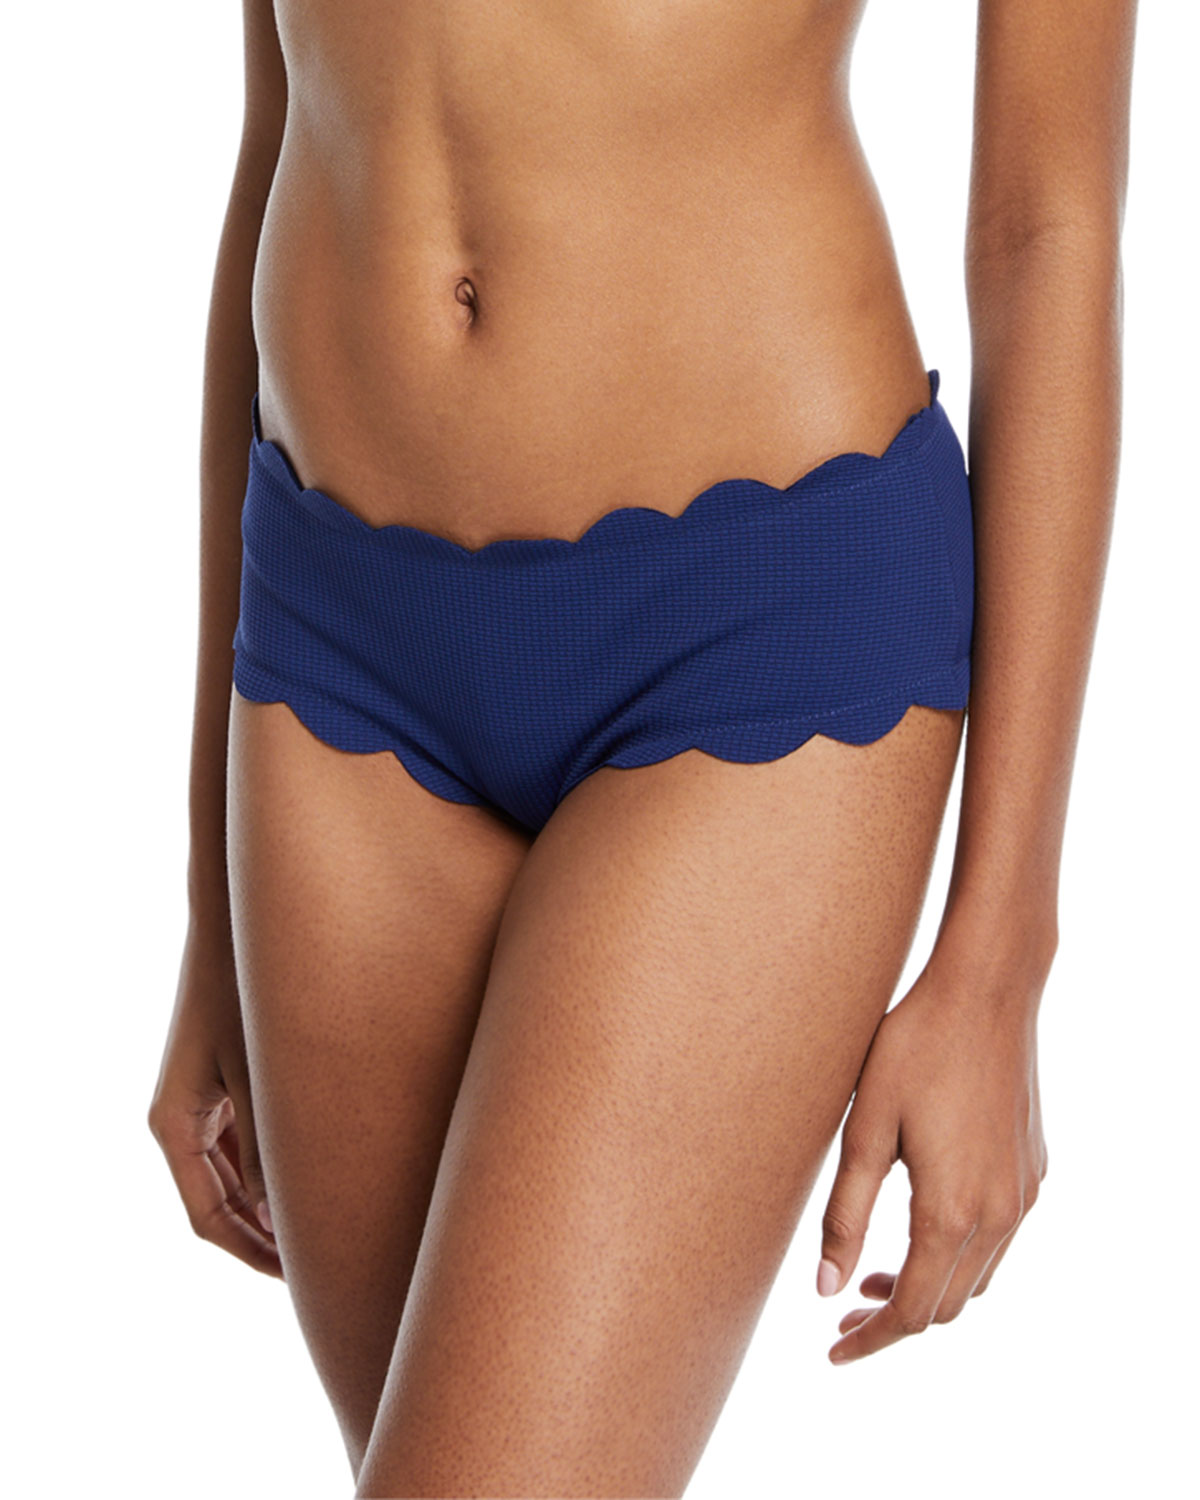 Spring Scalloped Boy-Cut Bikini Swim Bikini Bottom